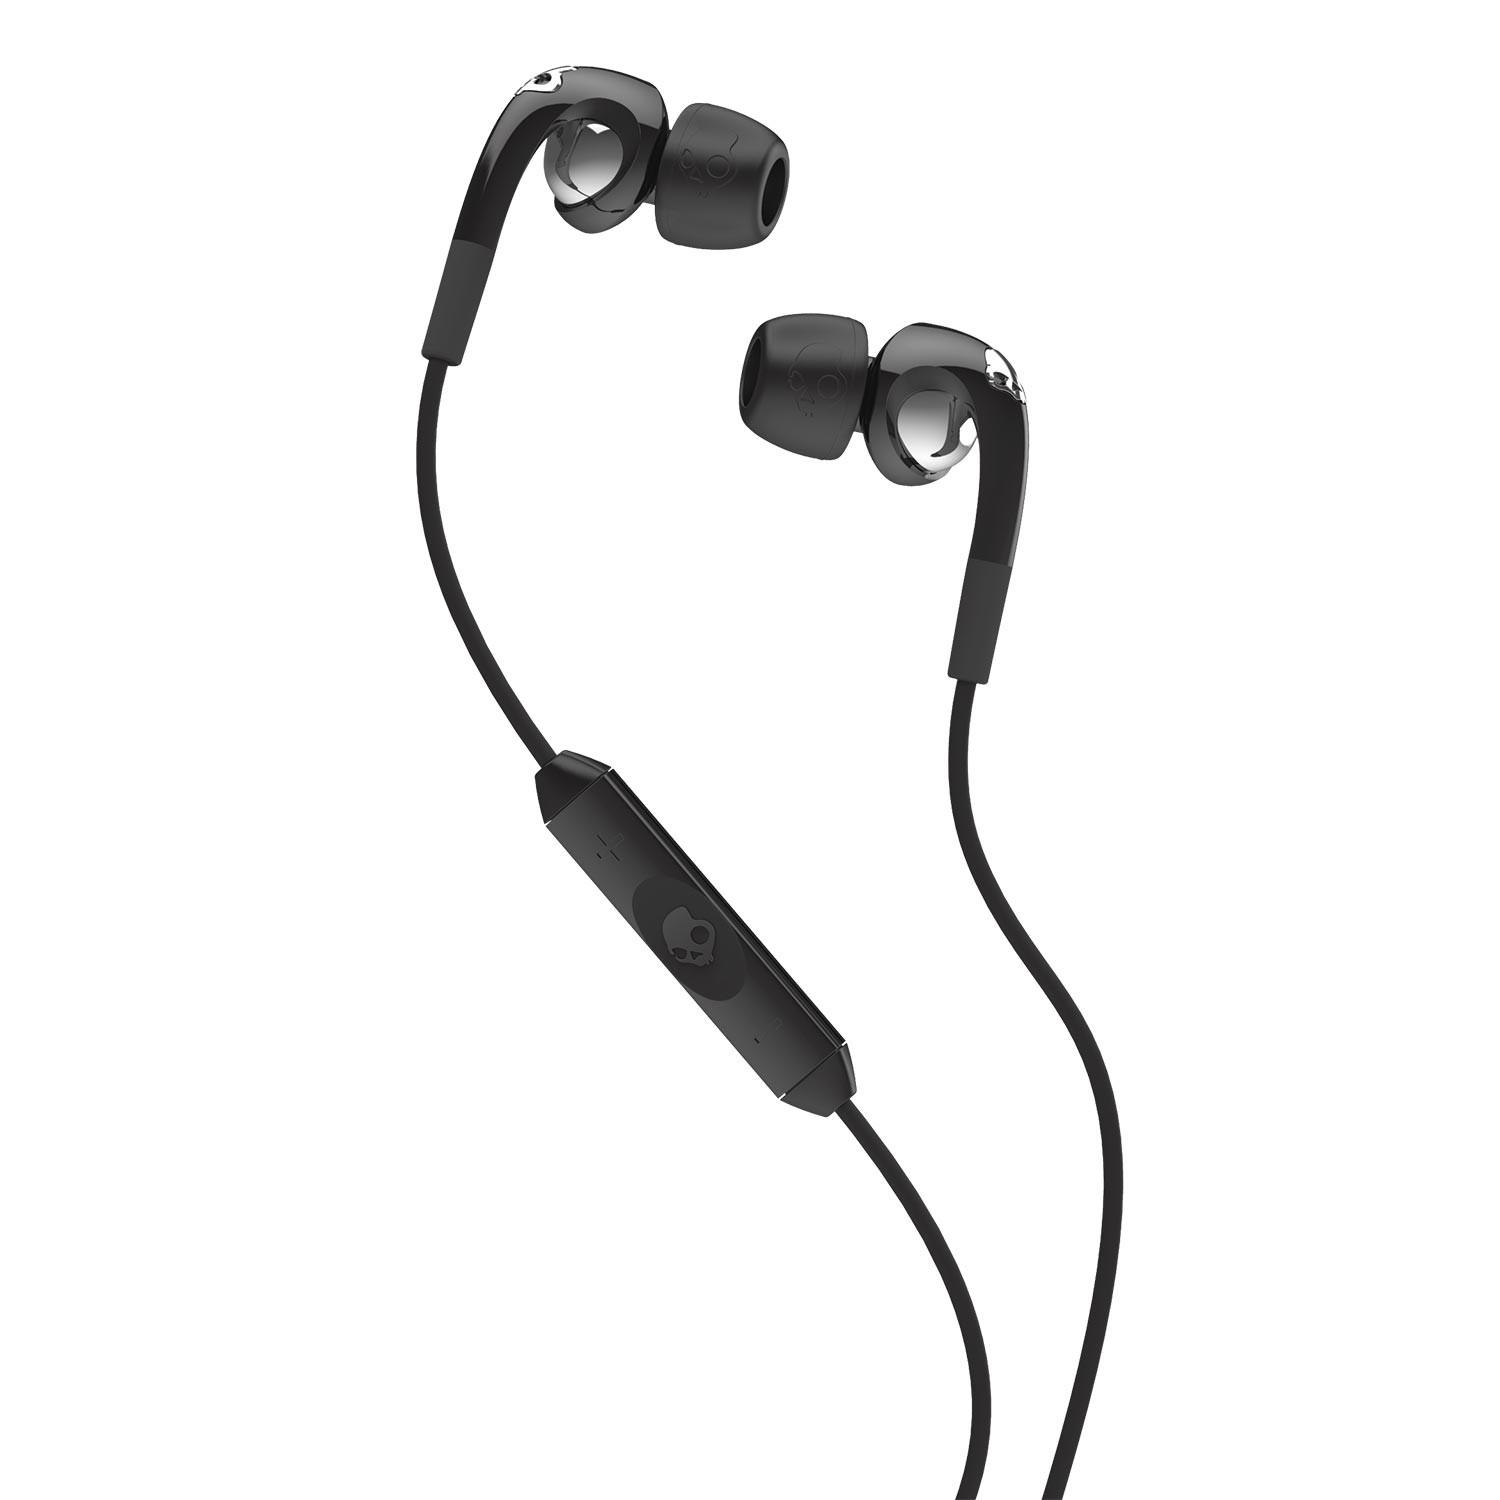 Sluchátka Skullcandy Fix black/chrome